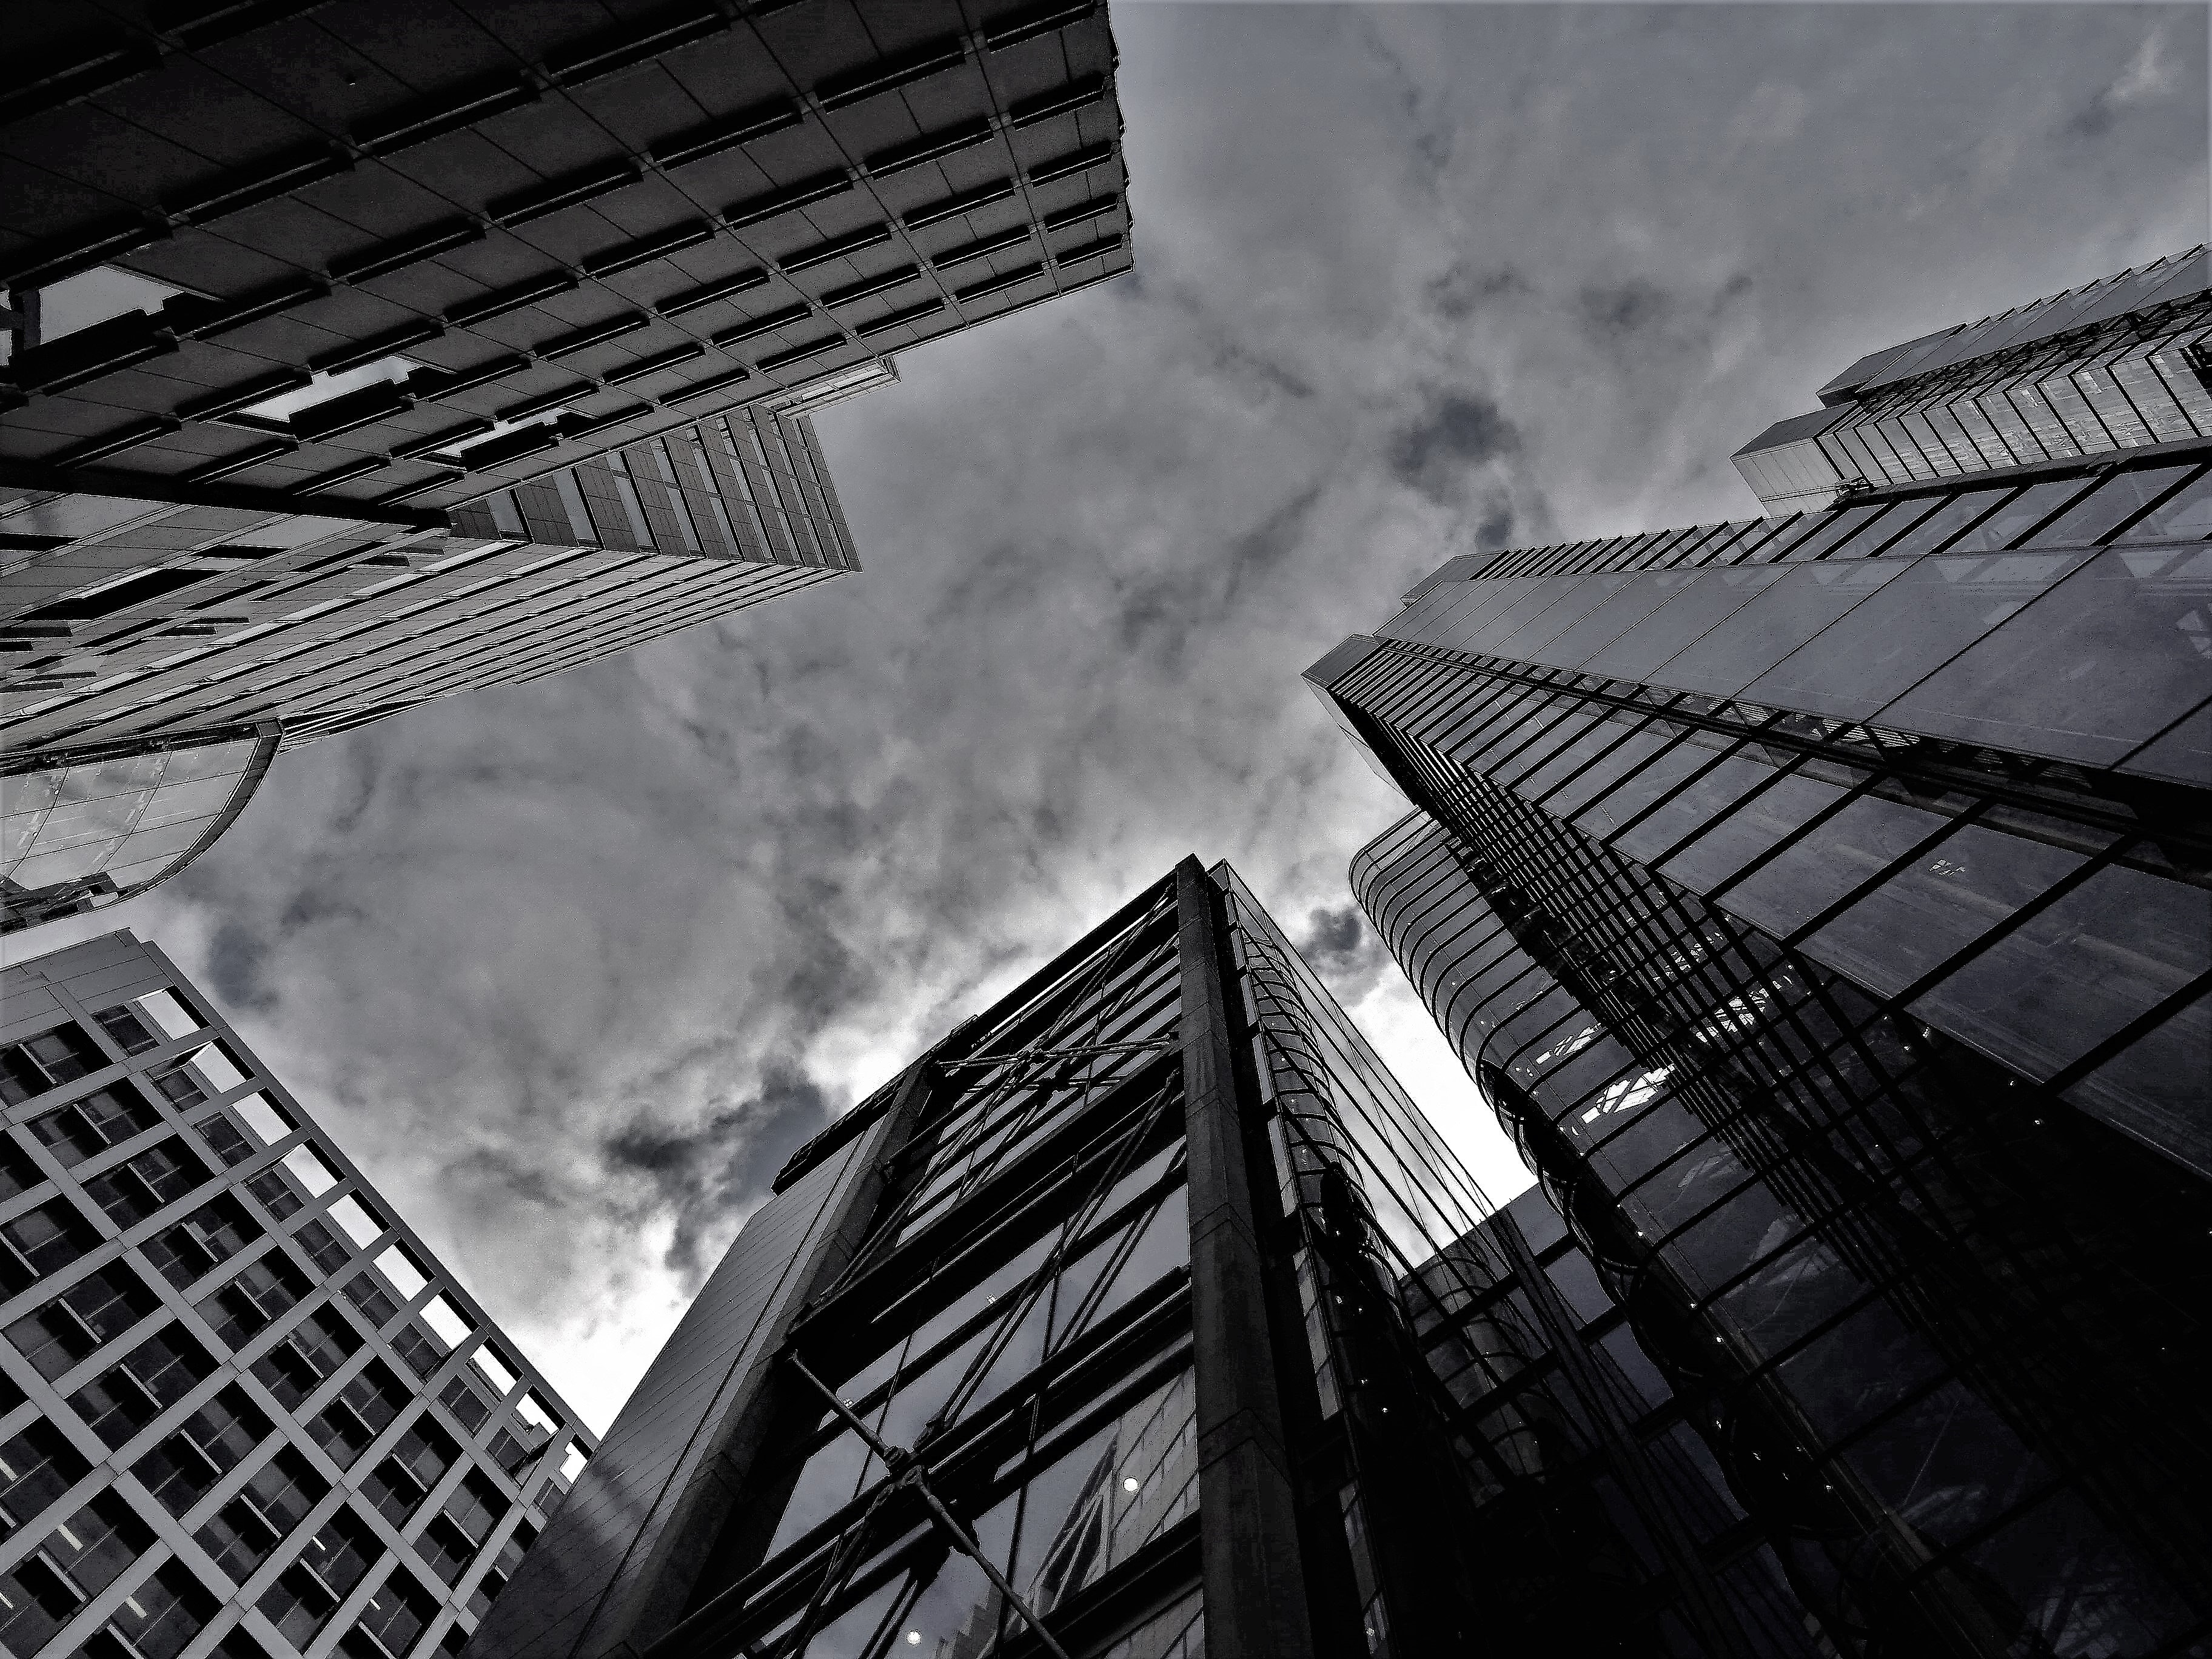 Low Angle Photography Of Building Free Stock Photo: Low Angle Photography Of High Rise Building · Free Stock Photo